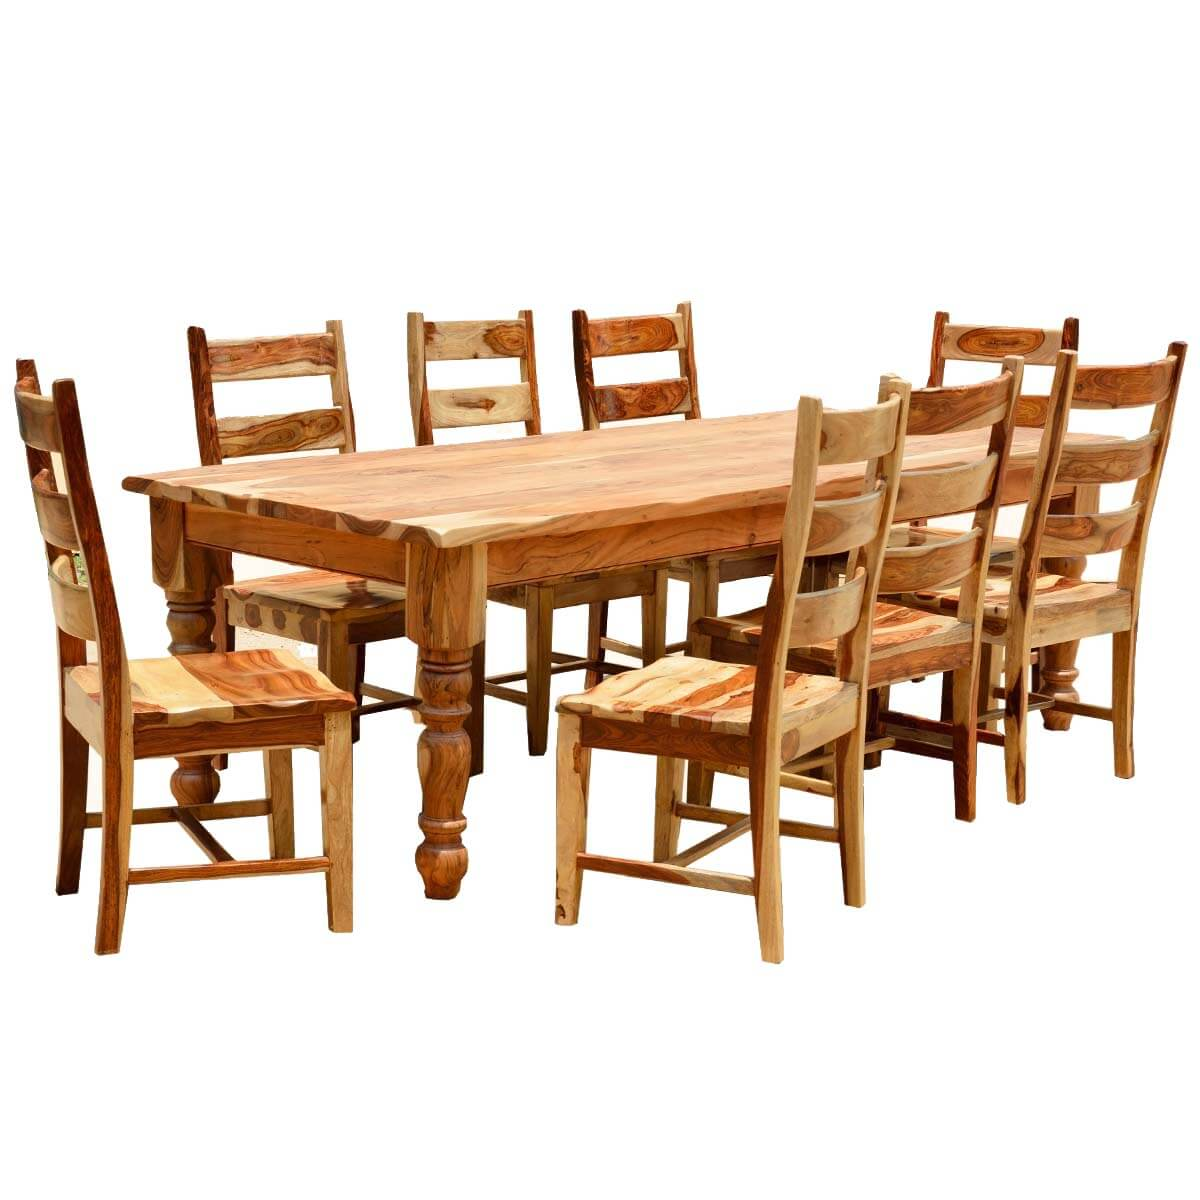 Rustic solid wood farmhouse dining room table chair set for Dining room tables chairs